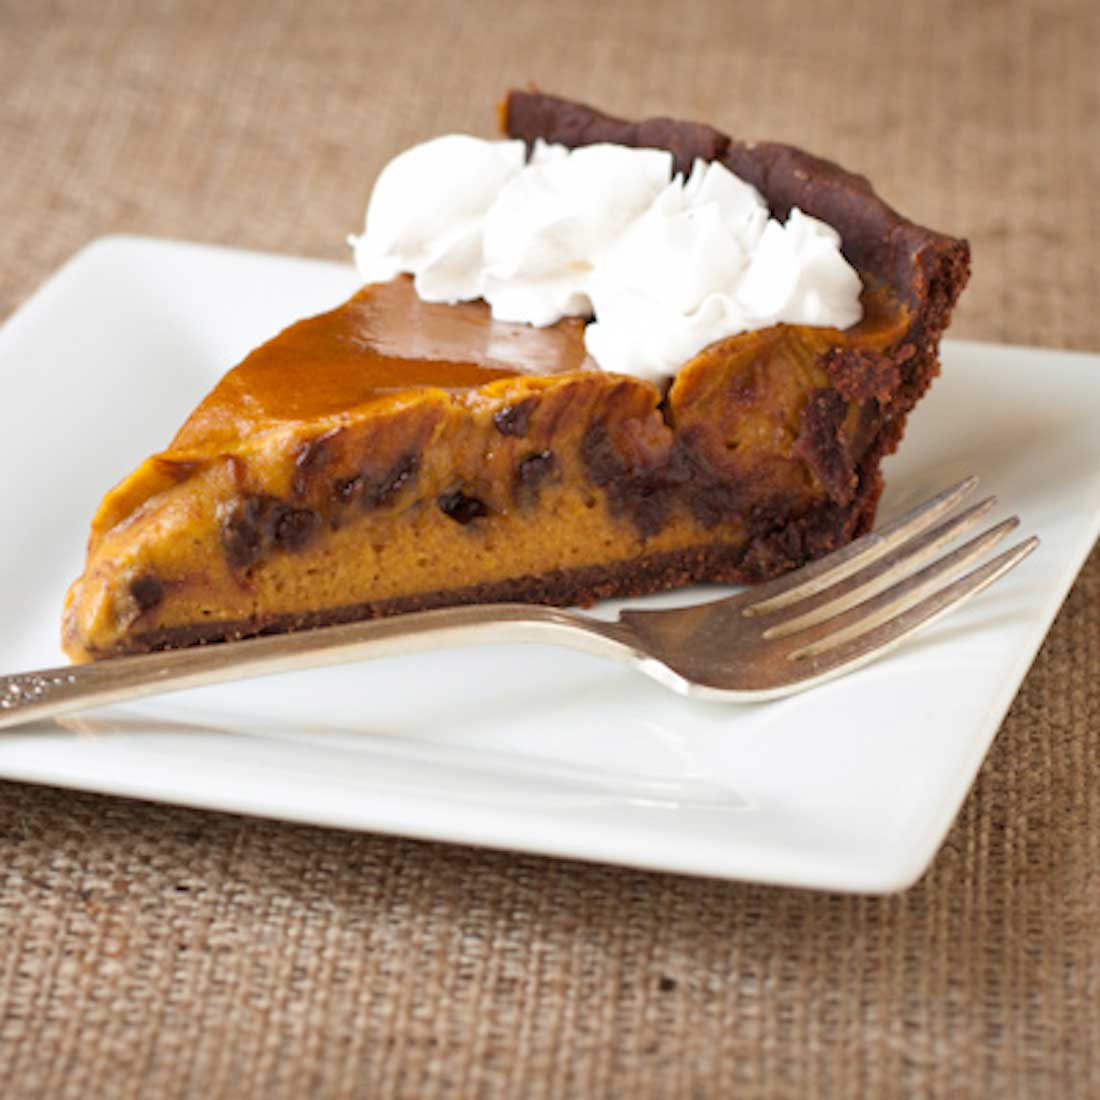 Vegan Gluten-Free Chipotle Chocolate Pumpkin Pie Recipe